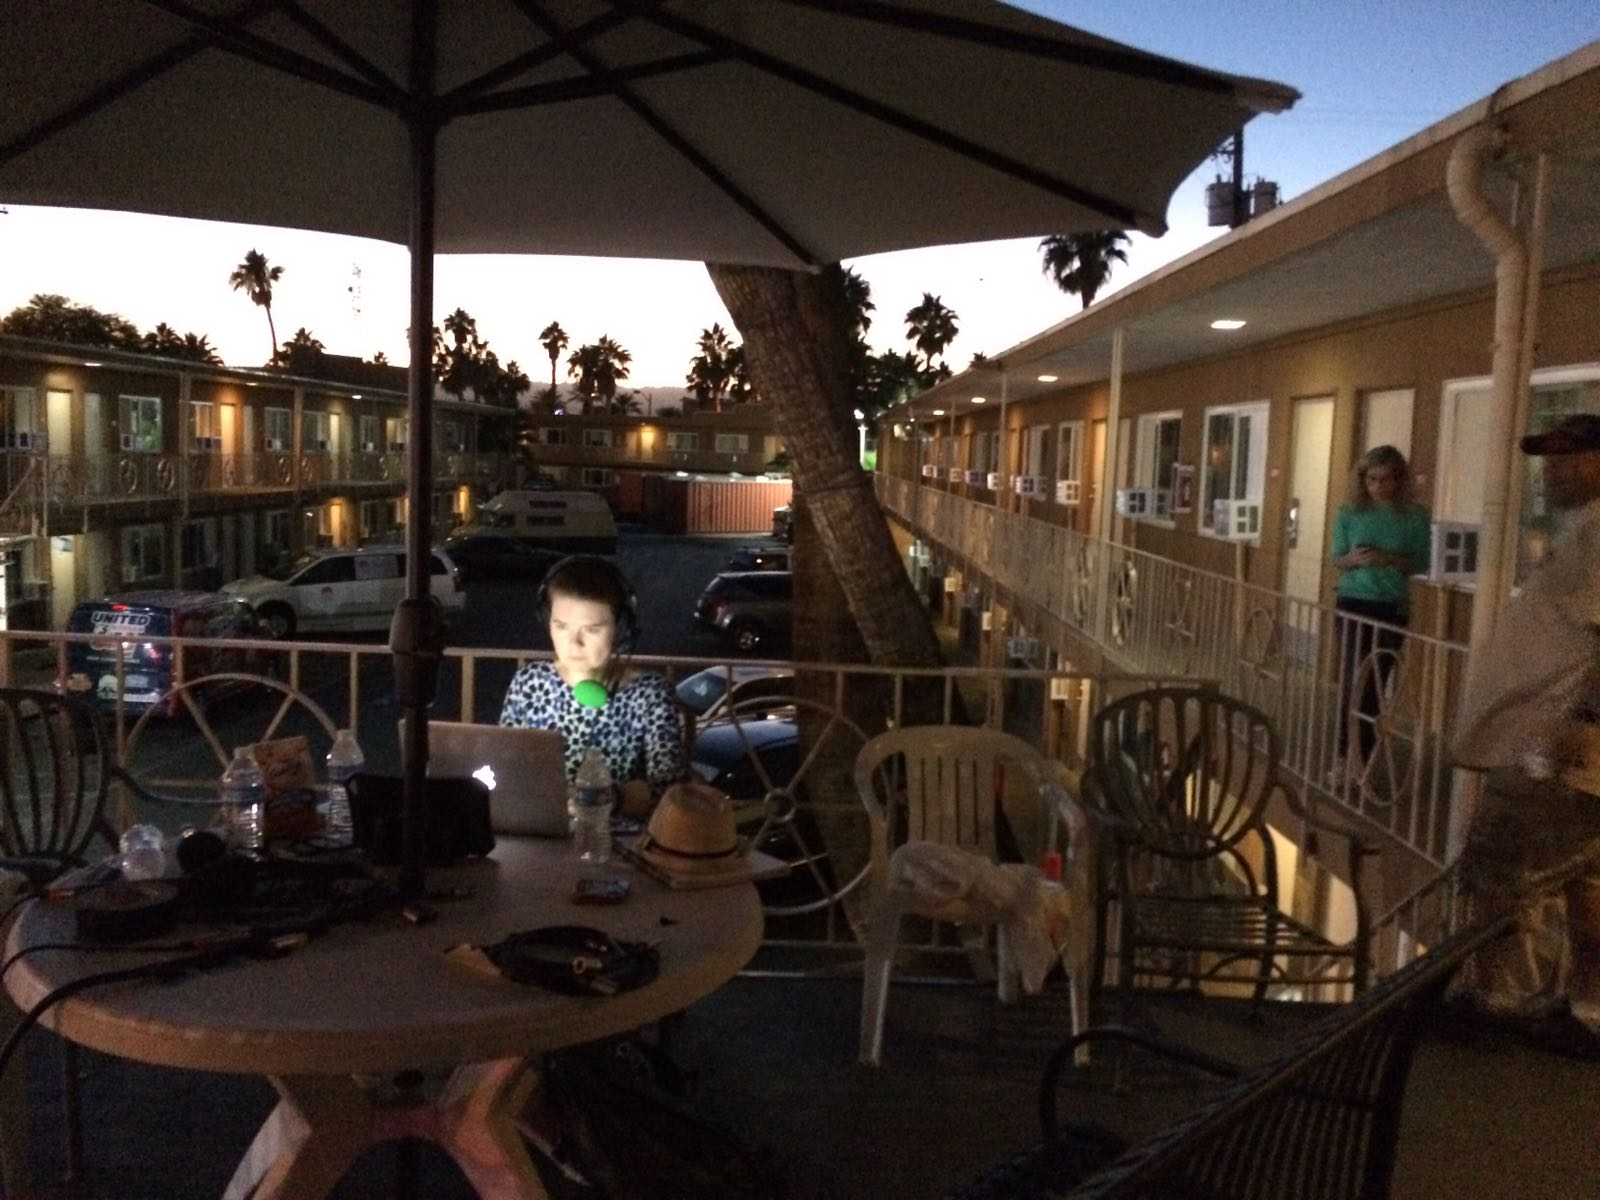 As the sun set on Las Vegas Boulevard, I prepared for a show with homeless veterans living in this motel.